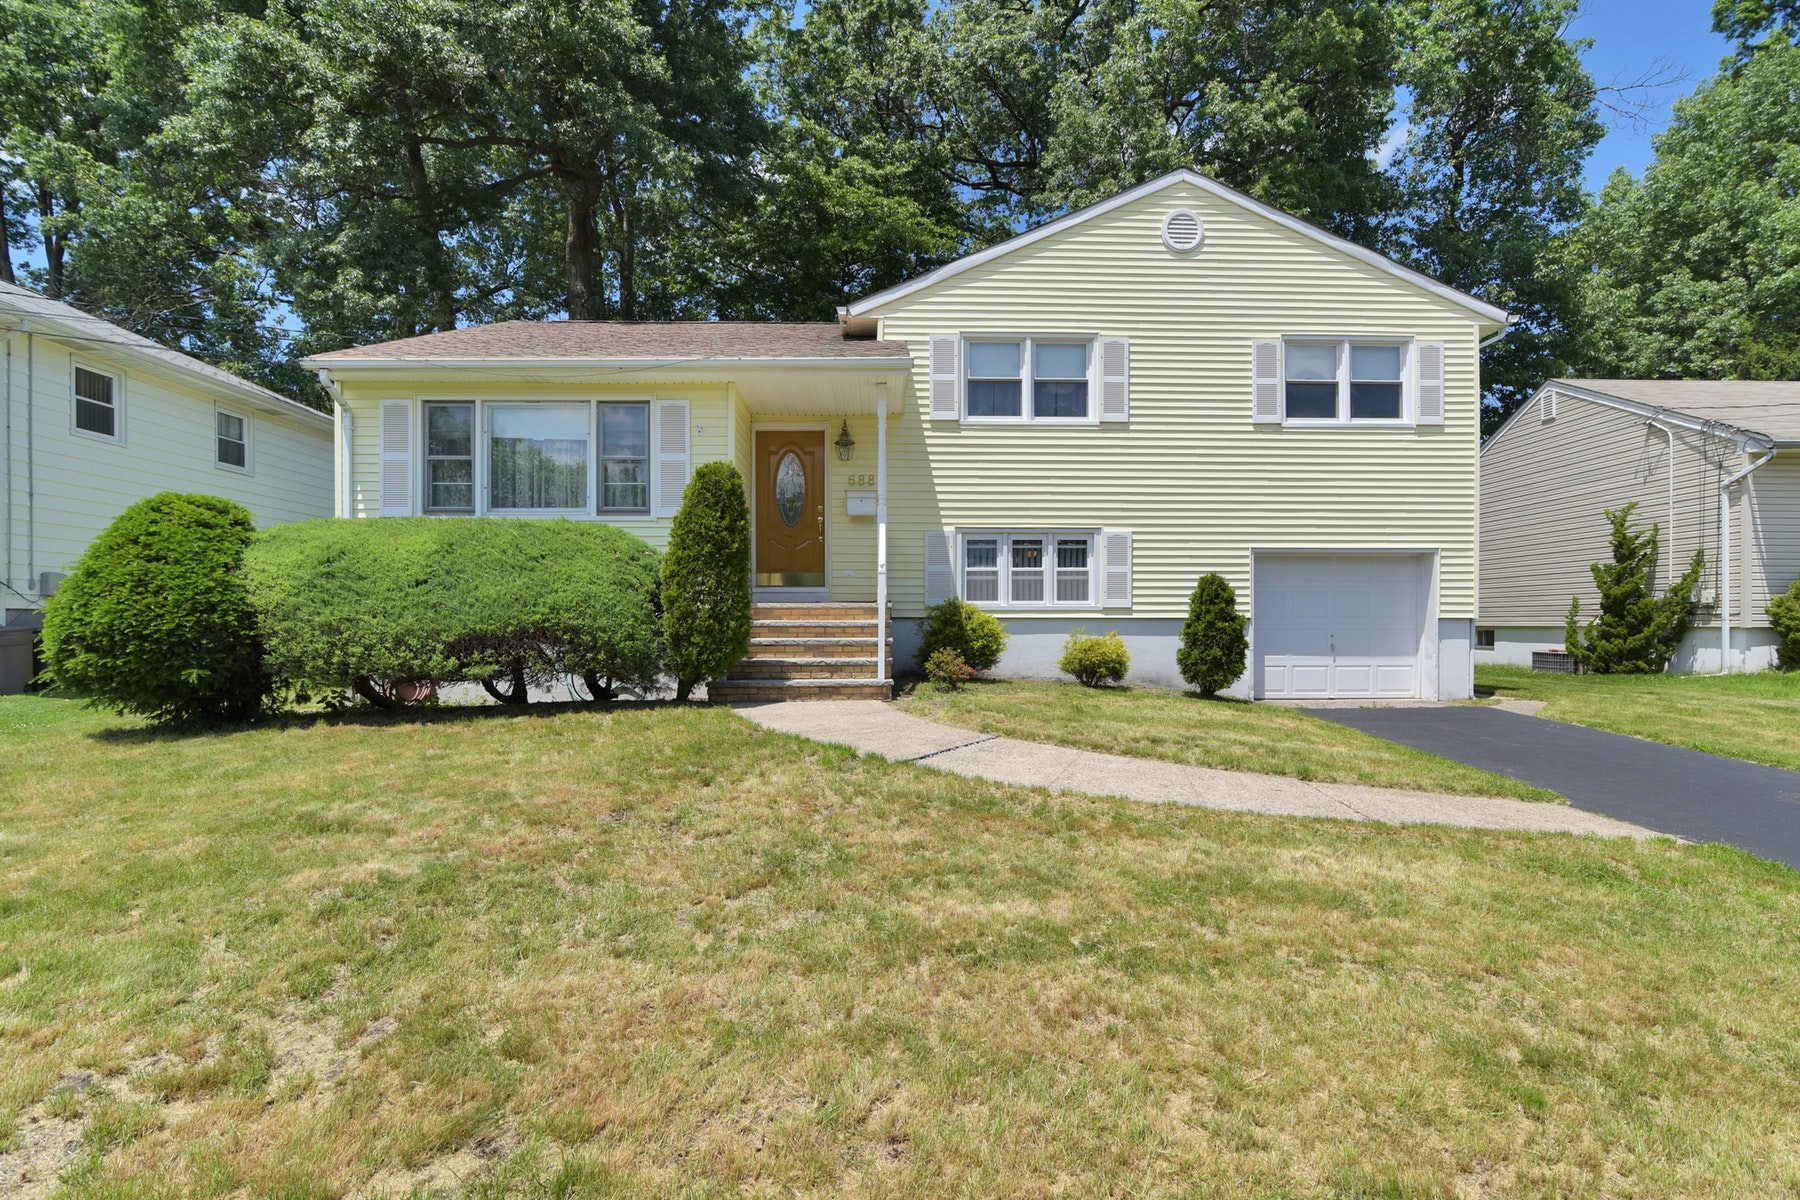 Single Family Homes for Sale at Spring Gardens 688 Winchester Ave Union, New Jersey 07083 United States